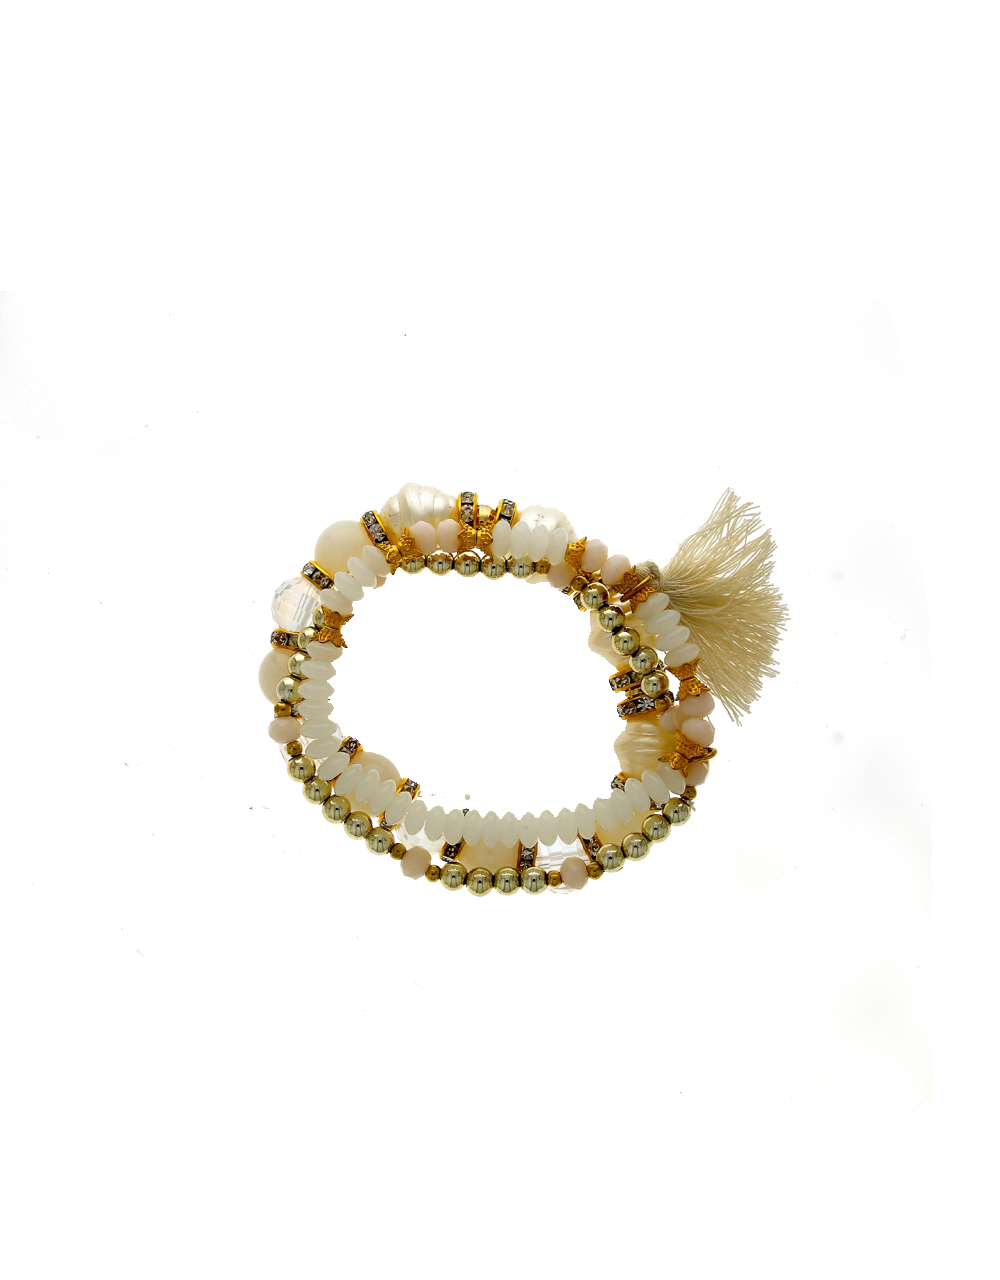 Anuradha Art White Colour Styled with Woven Pearl Beads Classy Hand Bracelet//Kada for Women//Girls